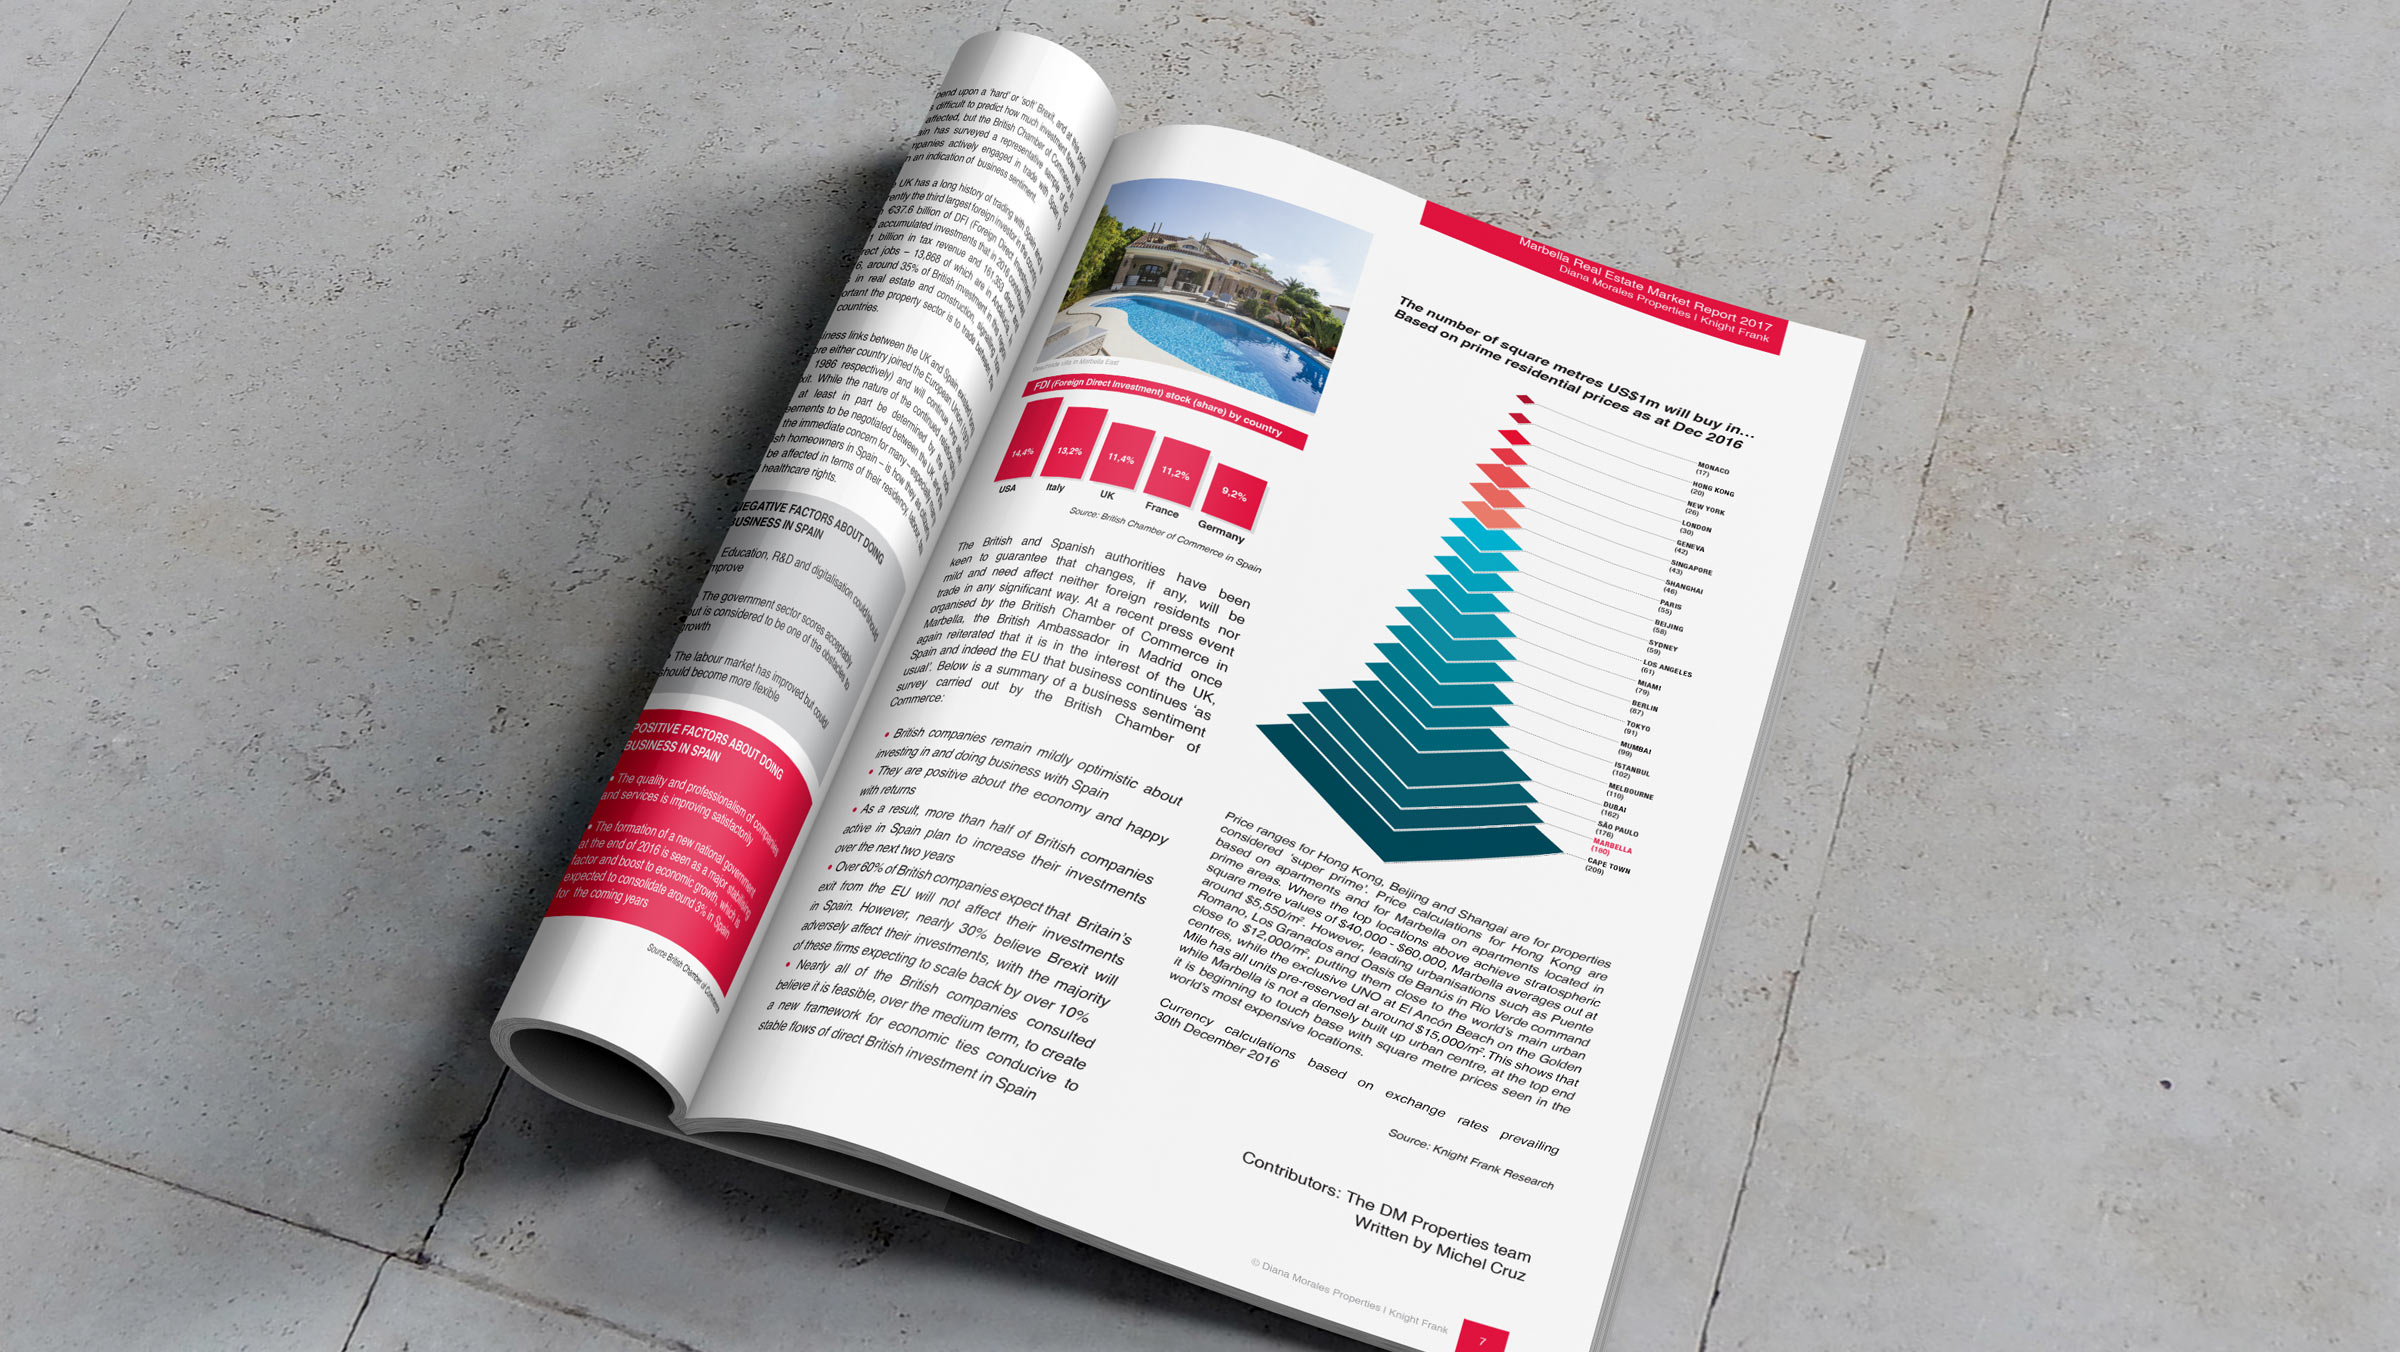 Get your DM Properties | Knight Frank Marbella Property Market Report 2017 now!